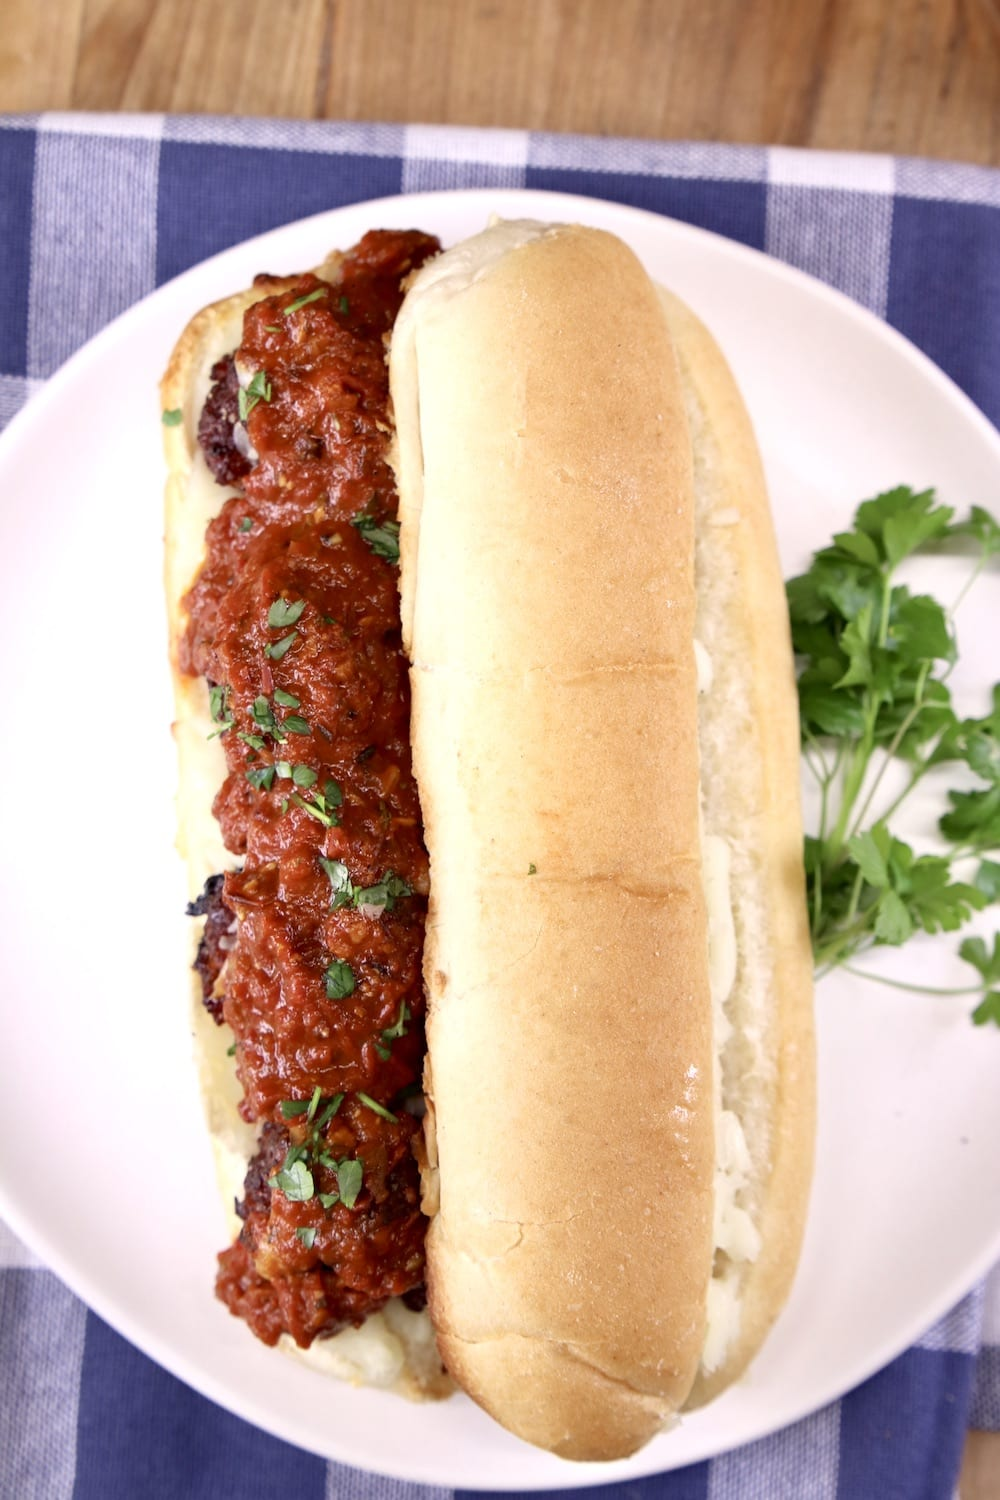 Meatball Sub sandwich on a white plate with parsley garnish